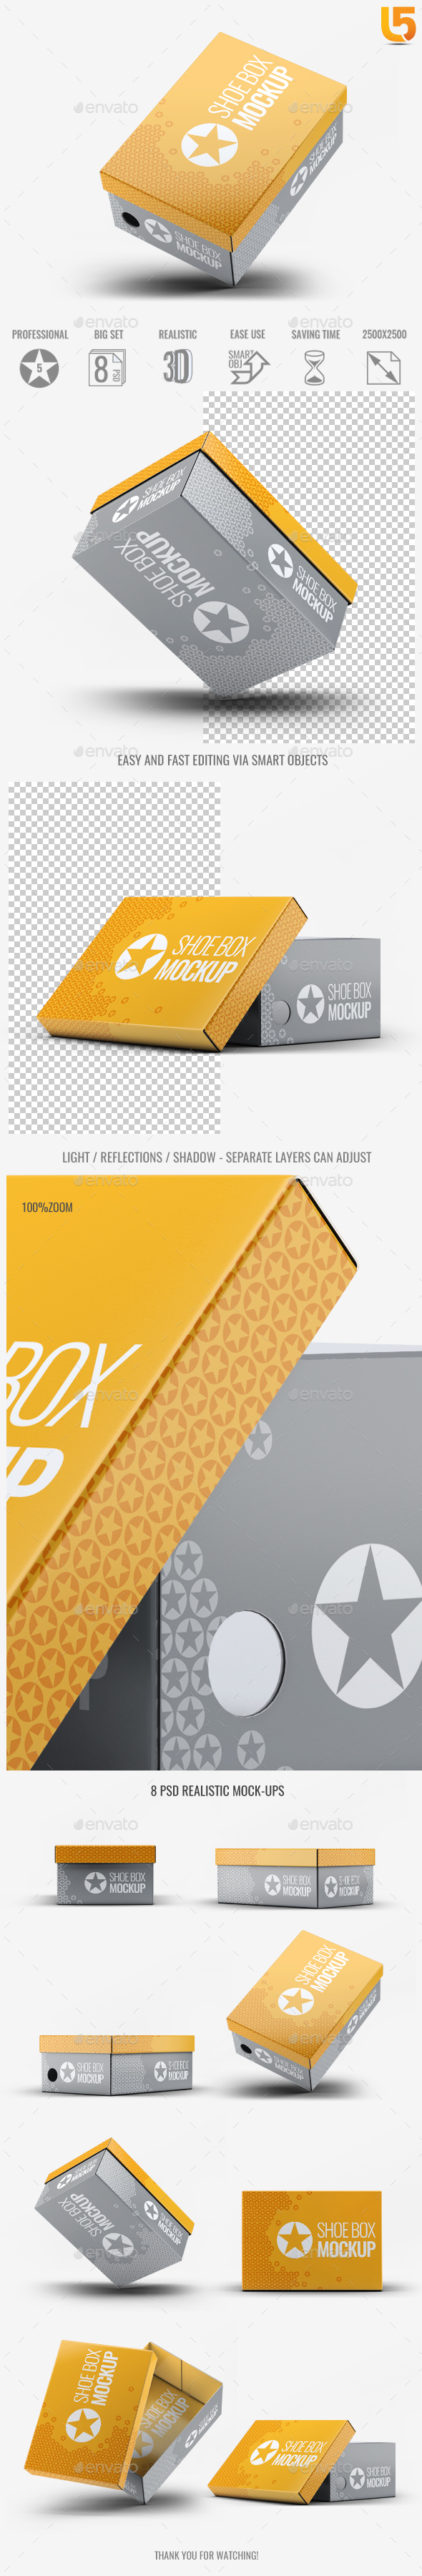 Shoe Box Mock-Up v.2 - Miscellaneous Packaging